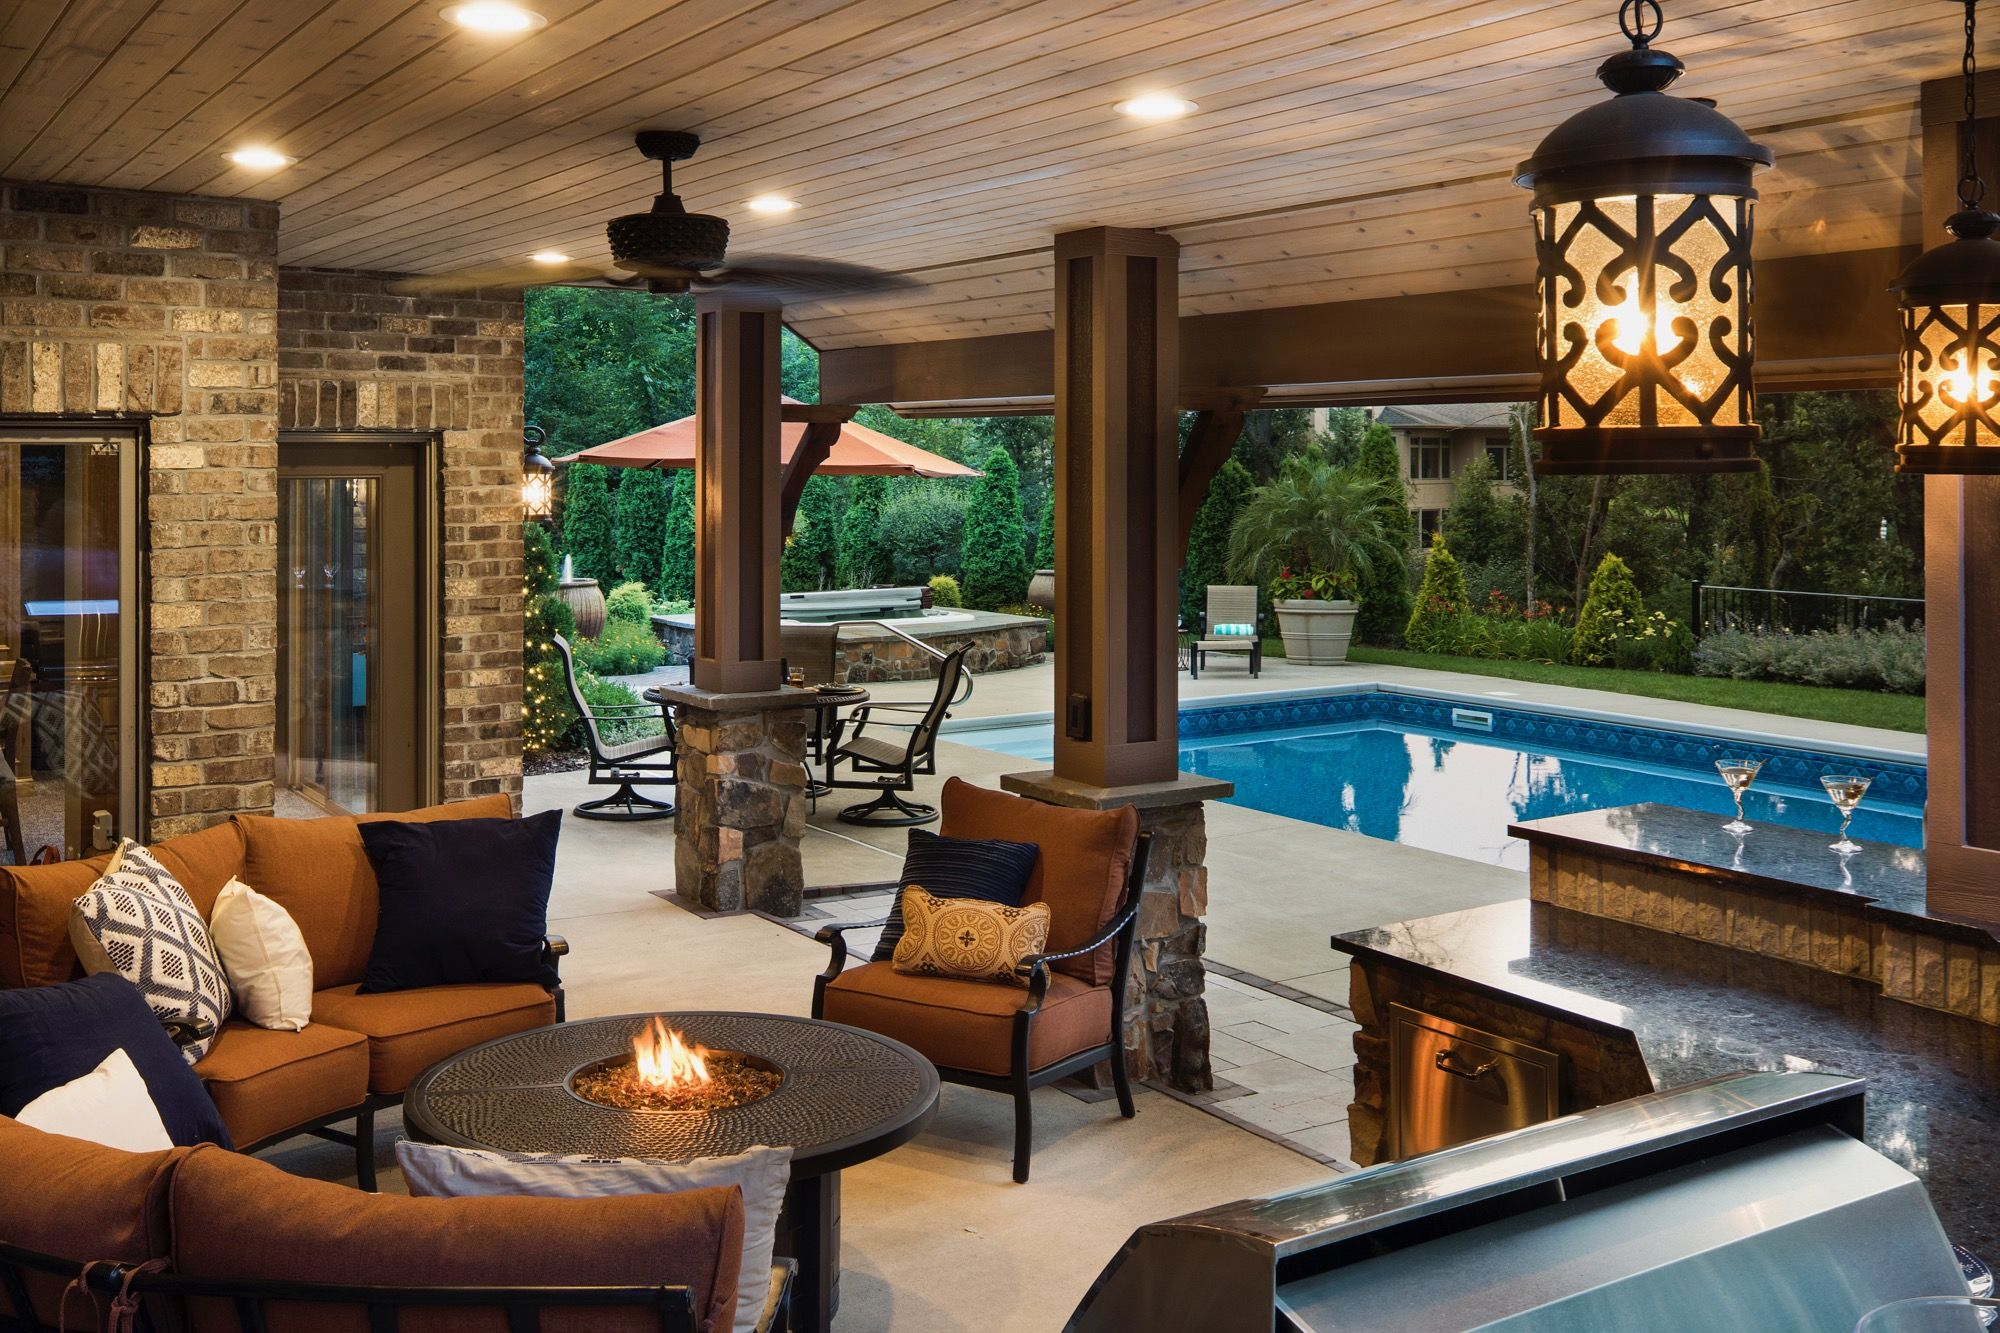 Moms Design Build Outdoor Fireplace Furniture In Ground Pool Hot